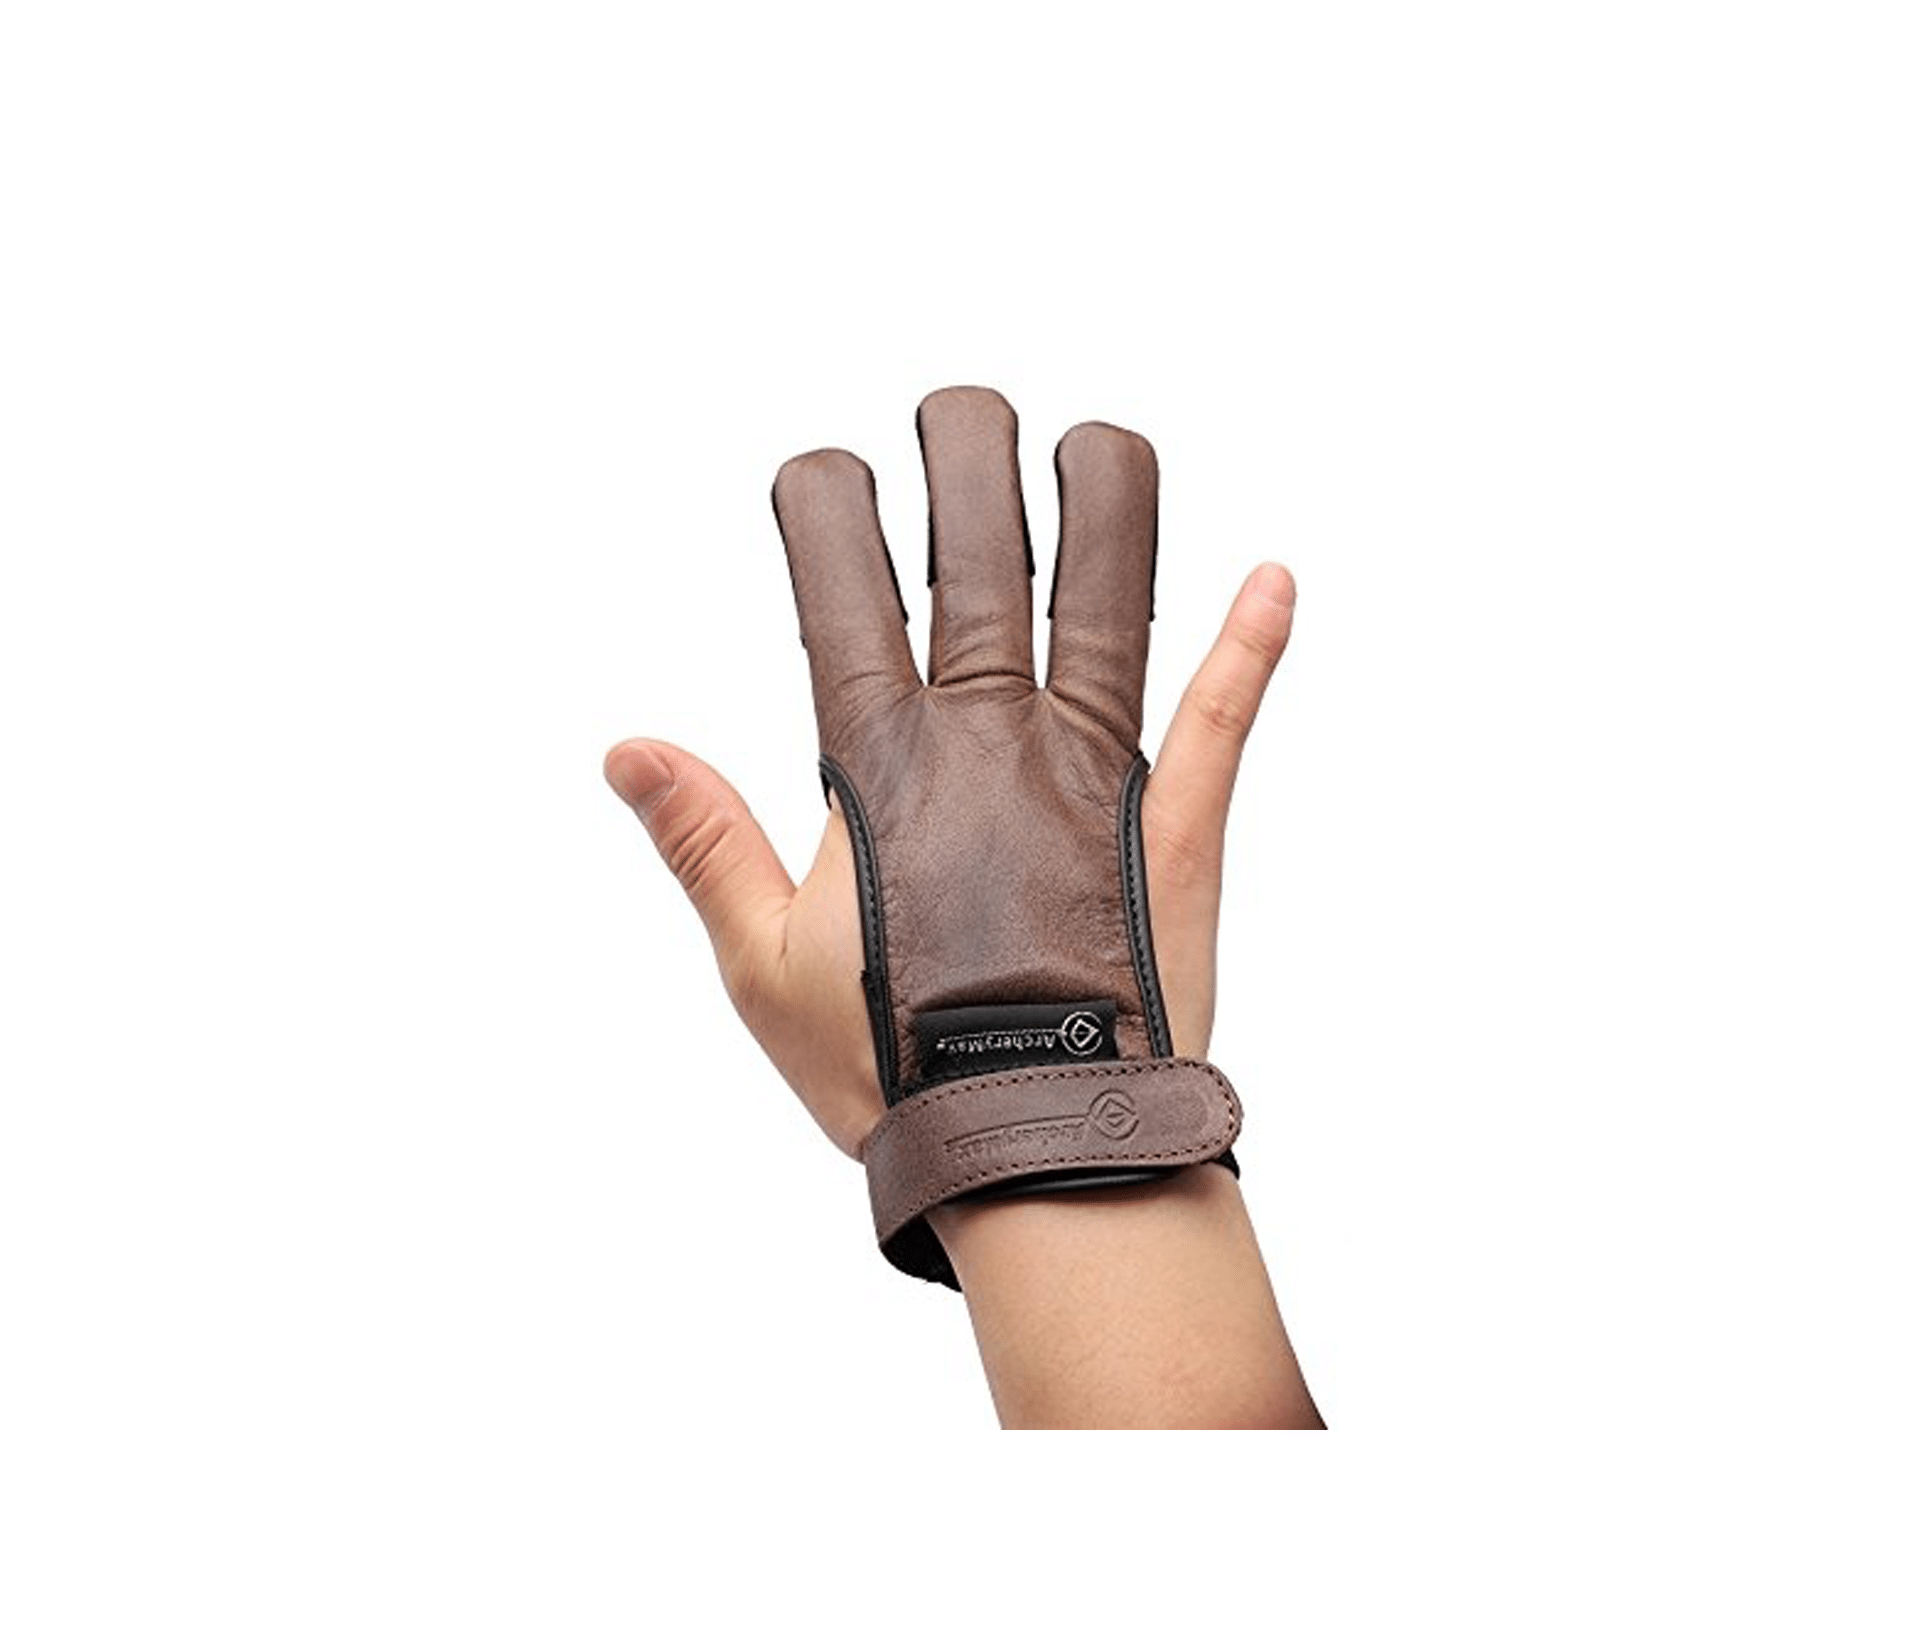 ArcheryMax Handmade Leather Glove